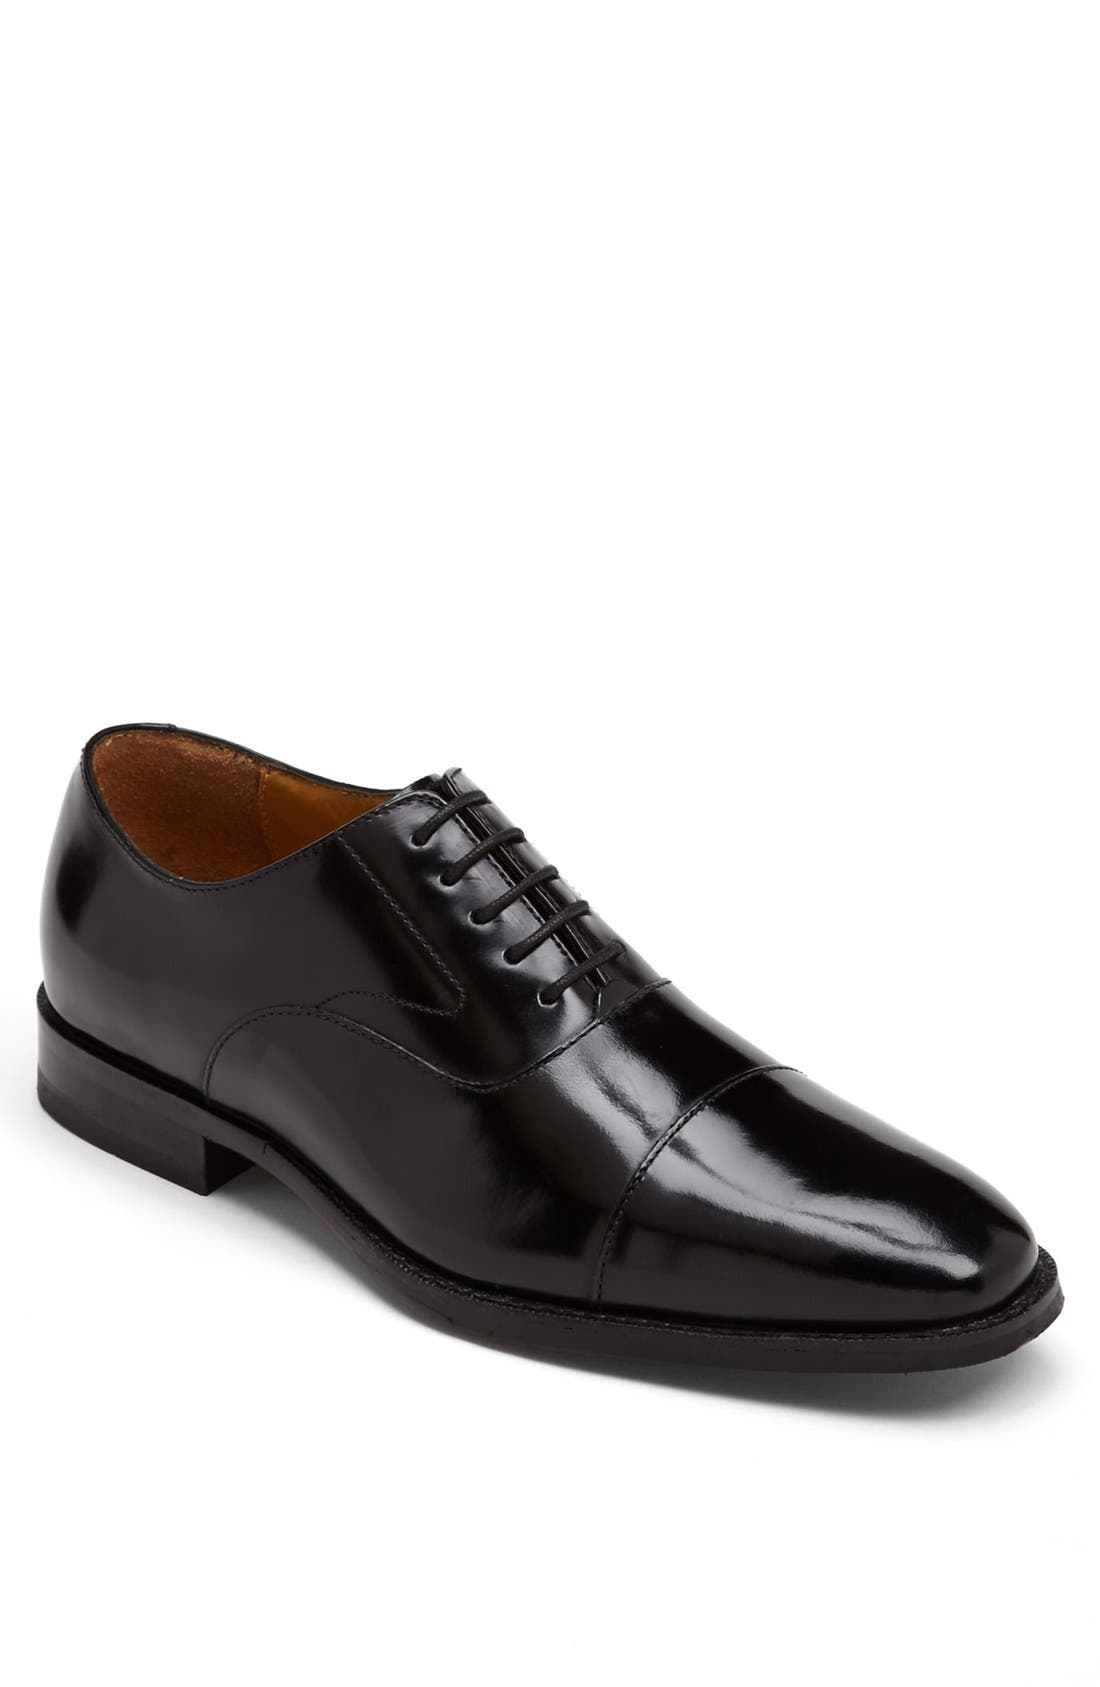 Alternate Image 1 Selected - Cole Haan 'Air Garrett' Cap Toe Oxford   (Men)